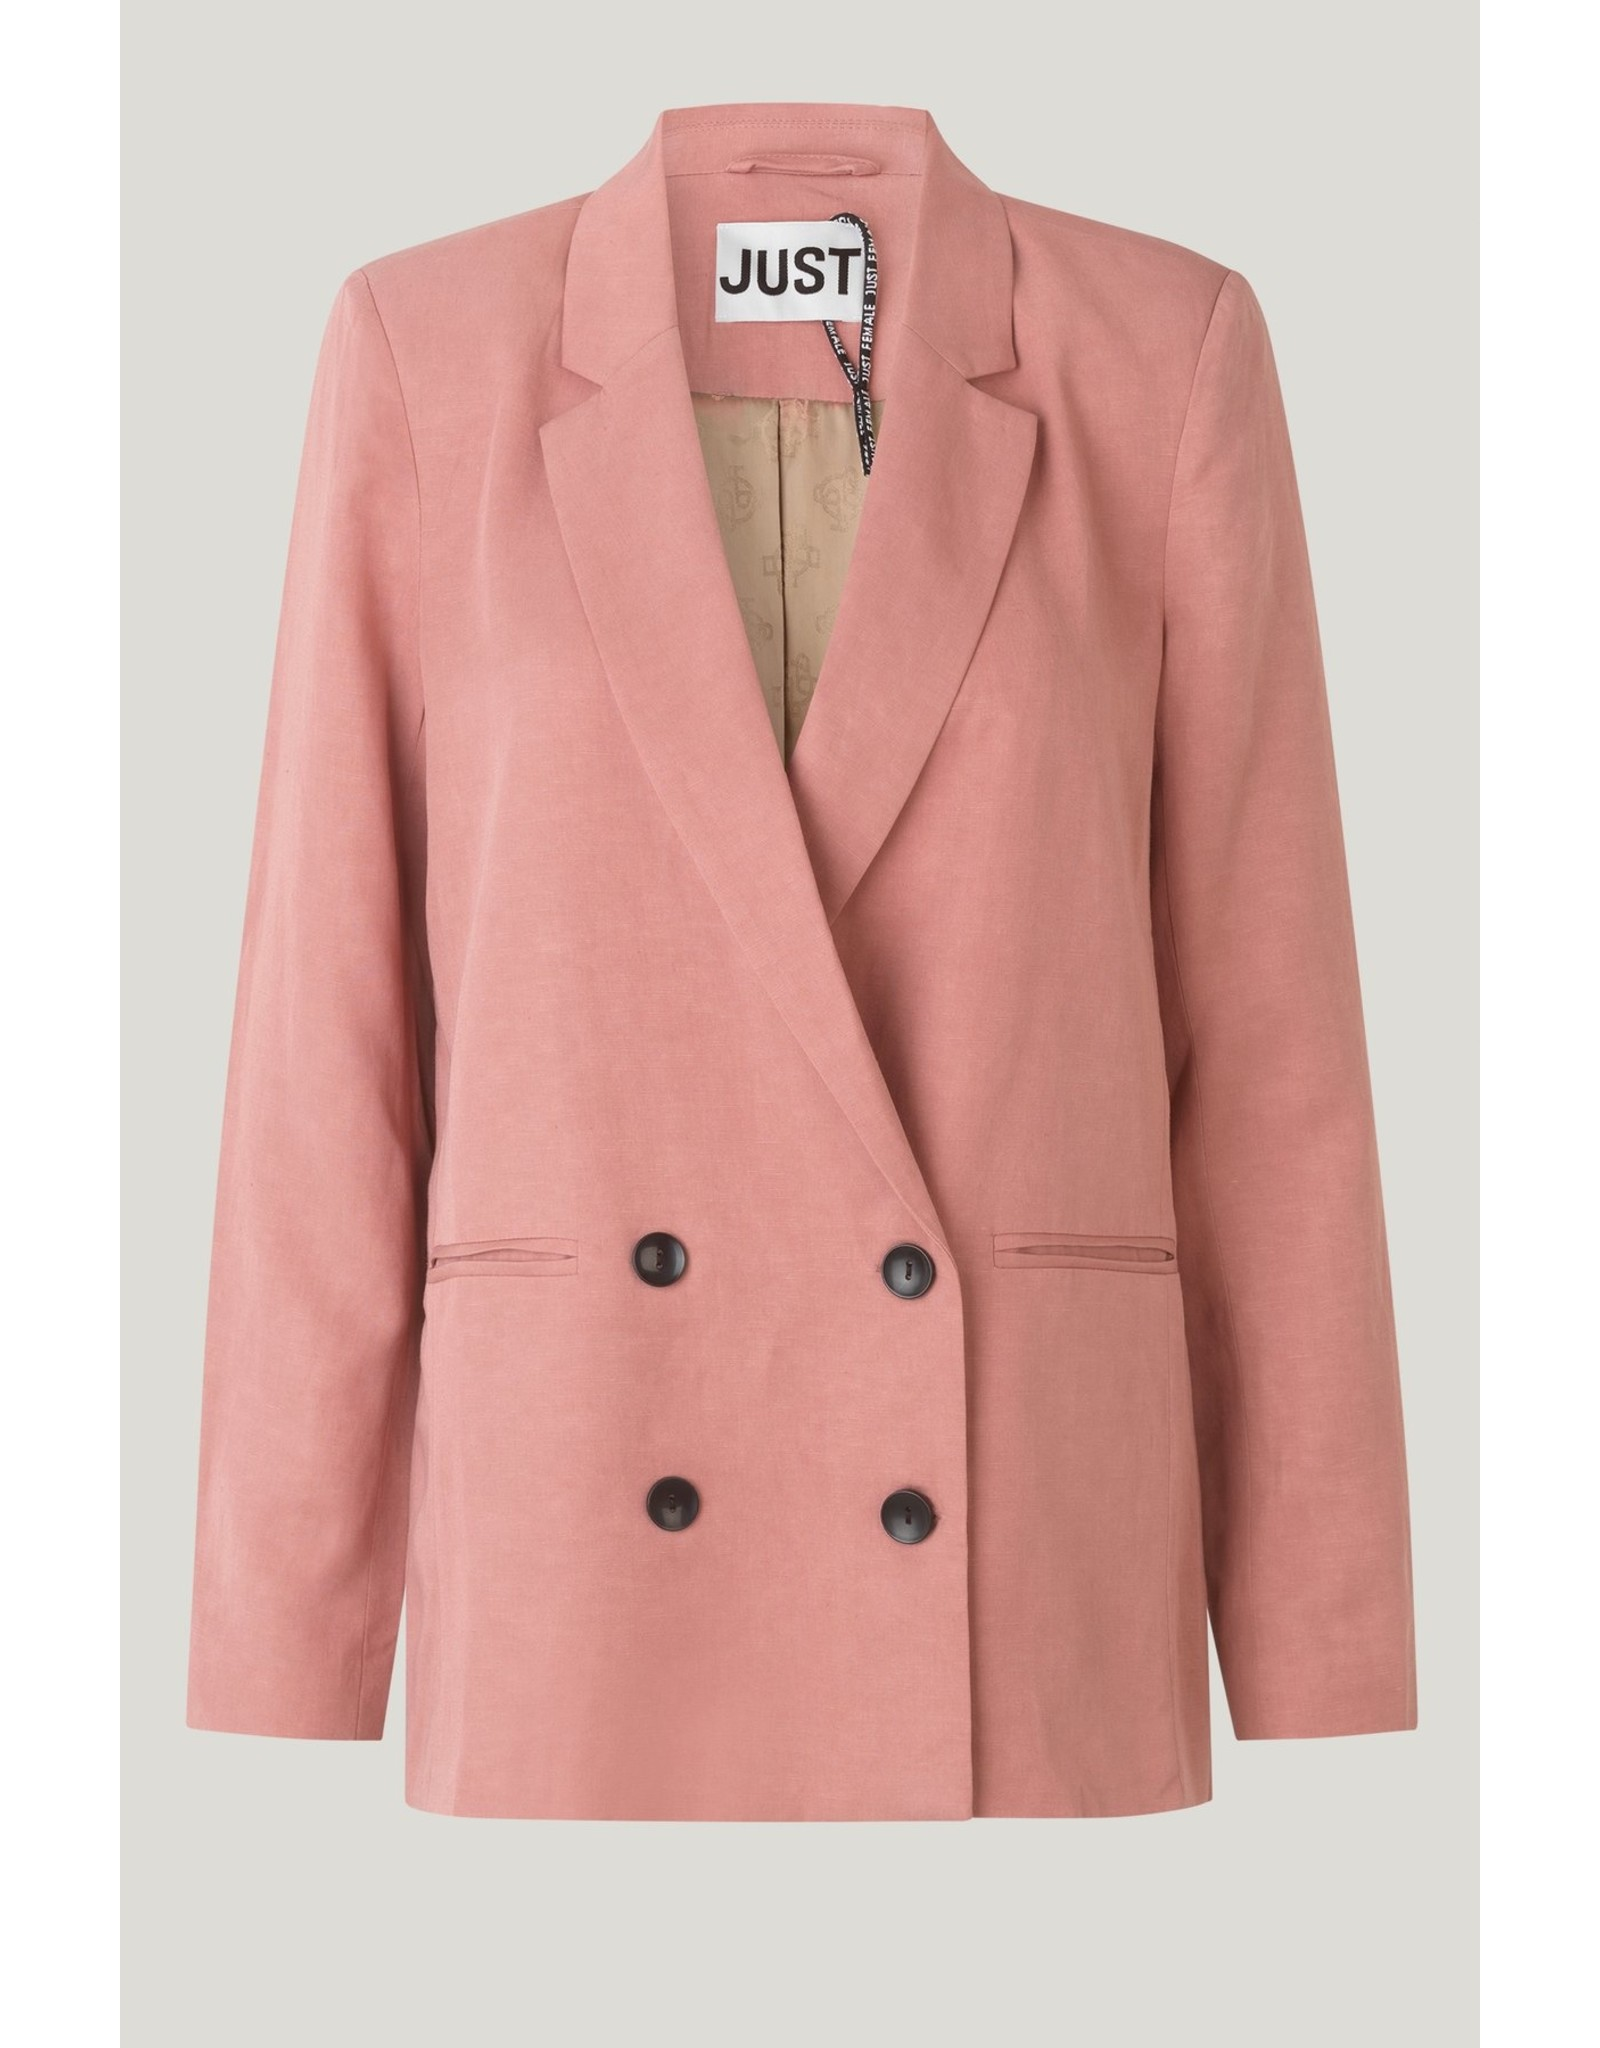 JUST FEMALE PRIYA SOFT BLAZER